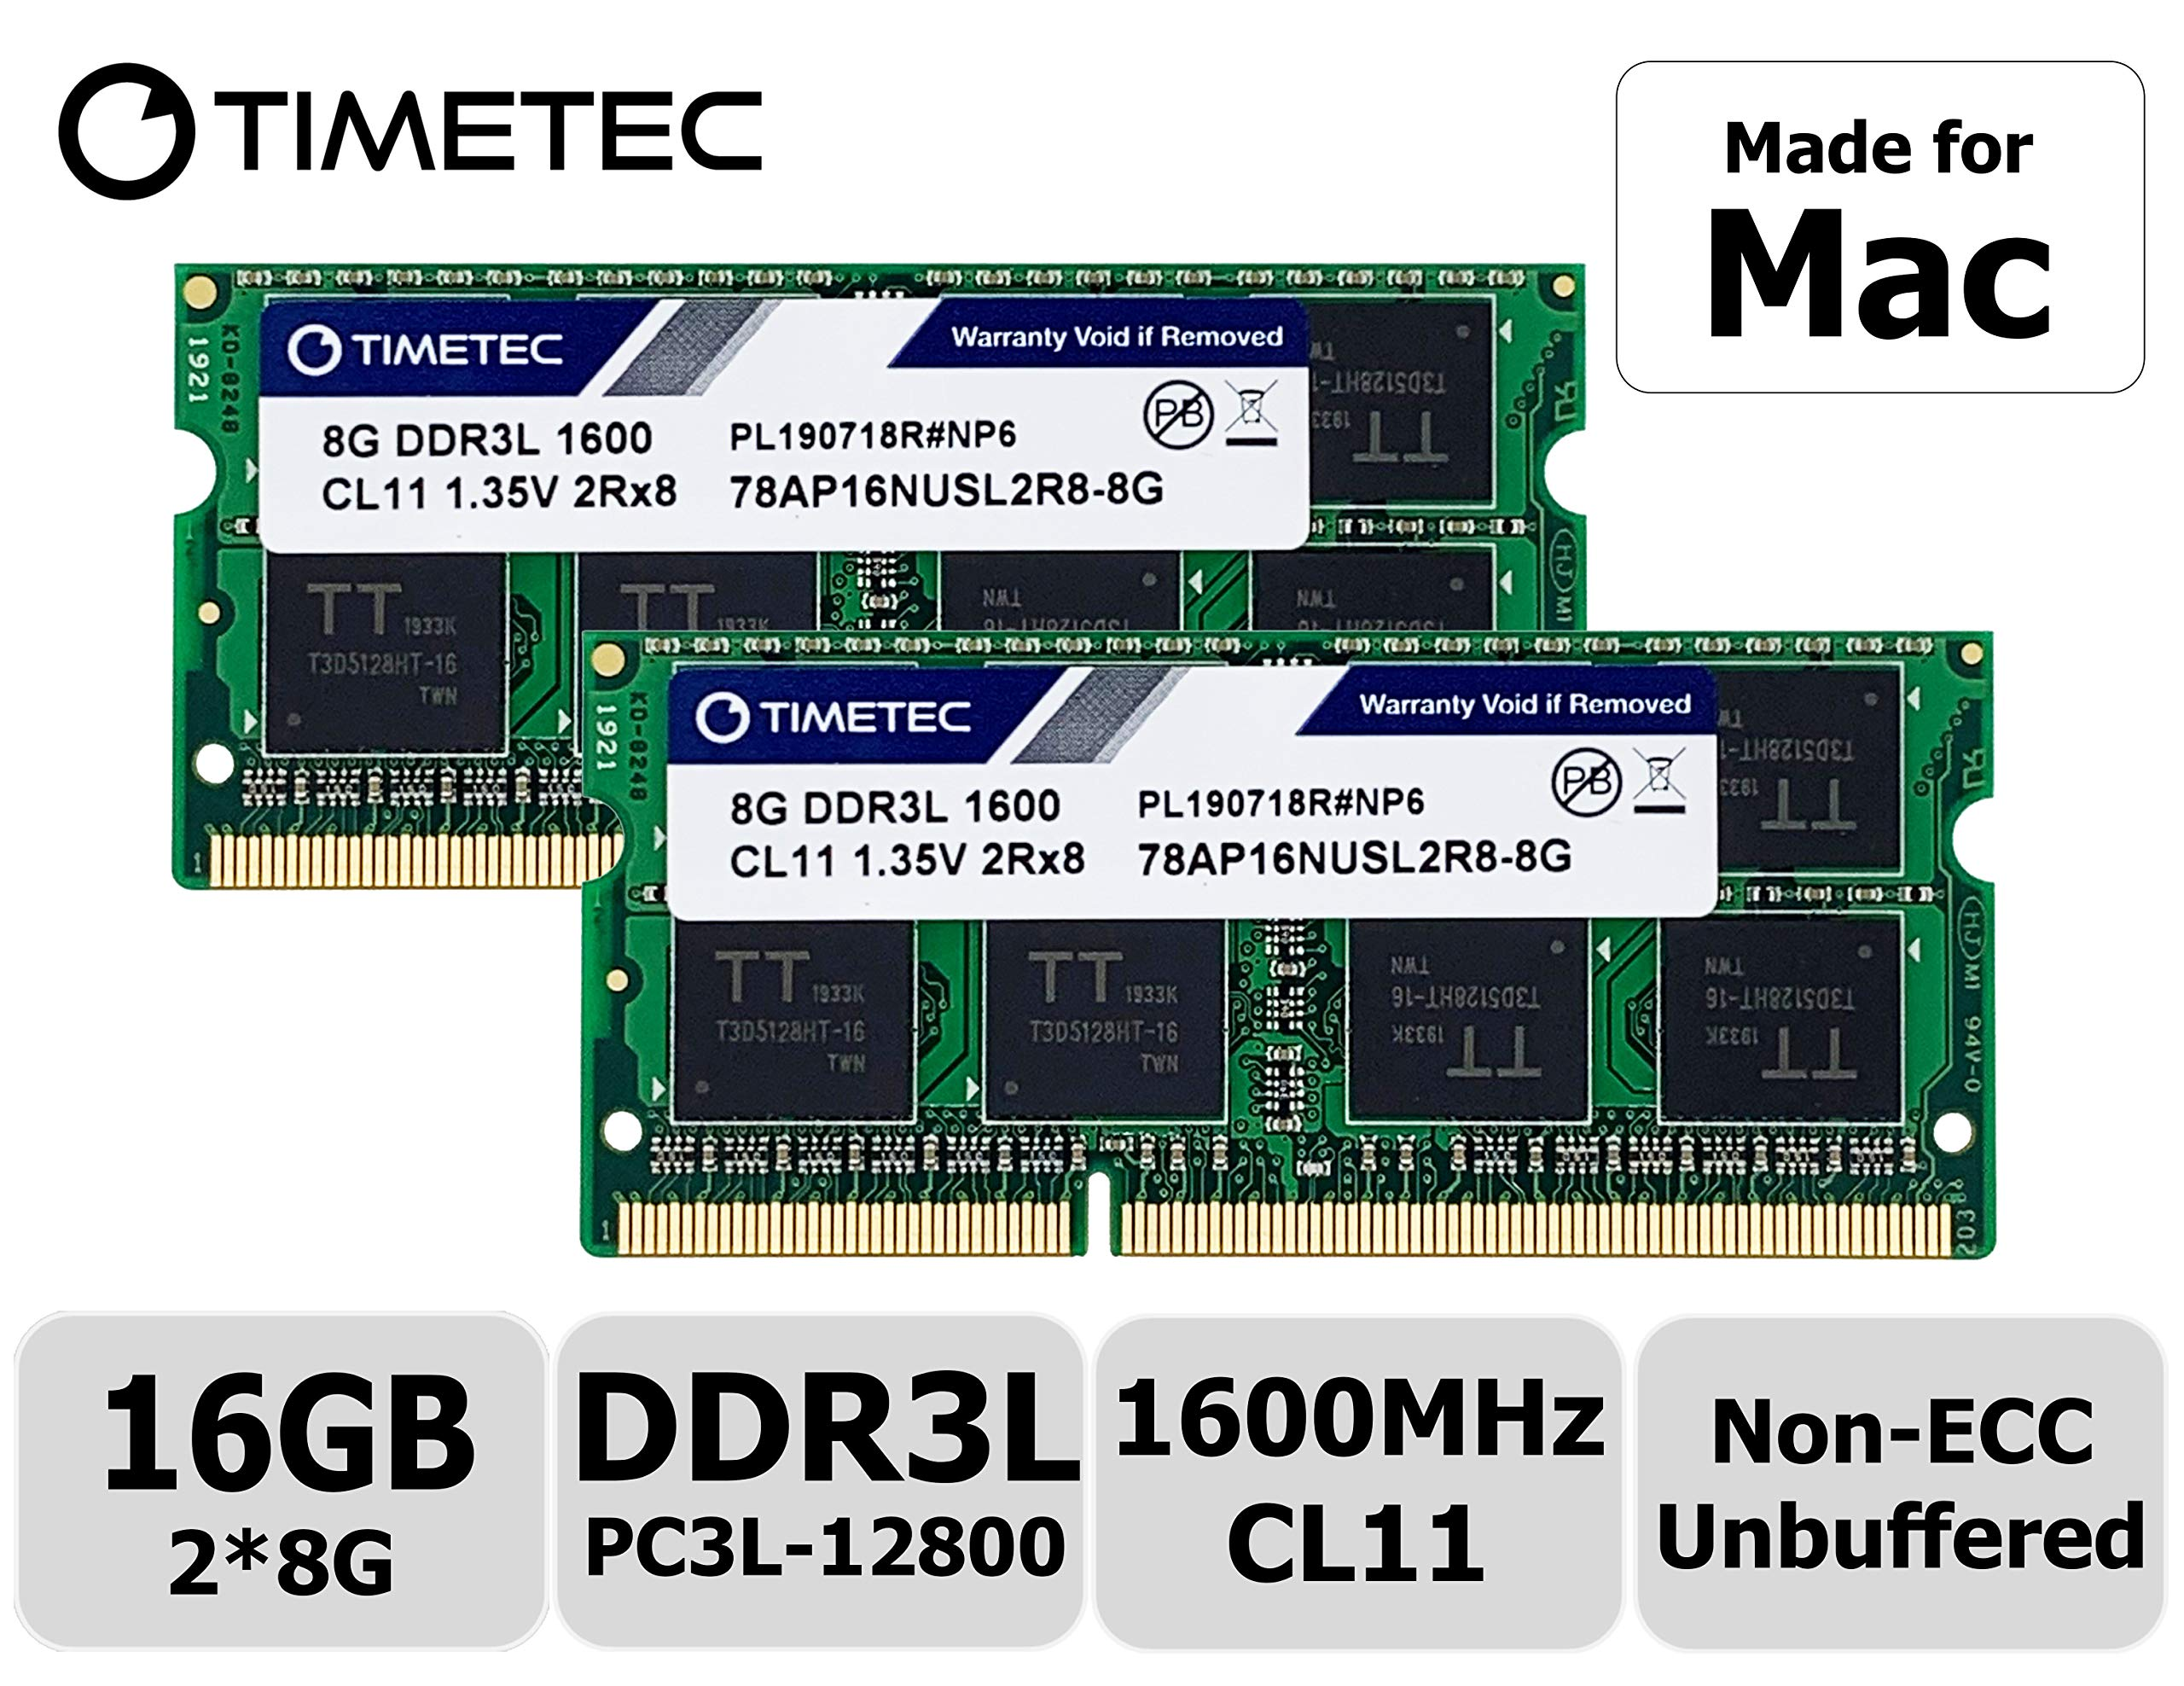 Timetec Hynix IC 16GB KIT(2x8GB) Compatible for Apple DDR3L 1600MHz PC3L-12800 for Early/Mid/Late 2011, Mid/Late 2012, Early/Late 2013, Late 2014, Mid 2015 MacBook Pro, iMac, Mac Mini(16GB KIT(2x8GB)) by Timetec